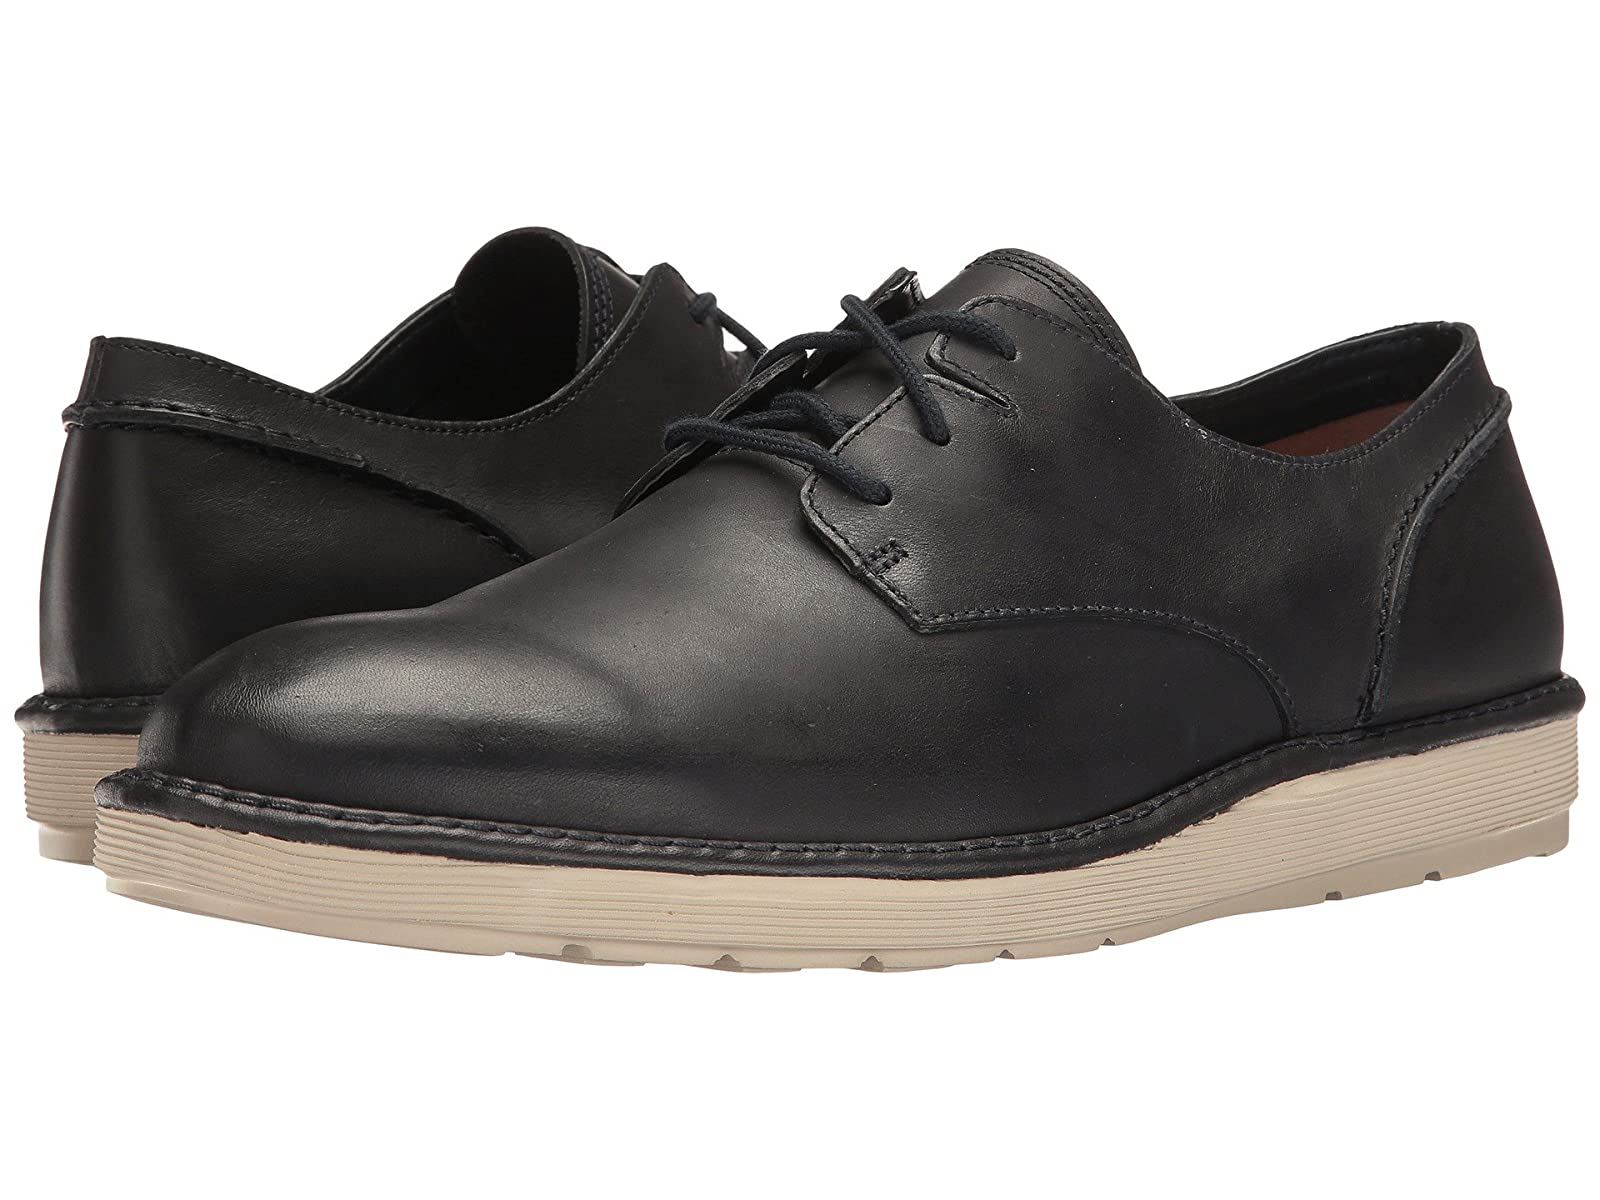 Clarks Fayeman LaceCheap and distinctive eye-catching shoes